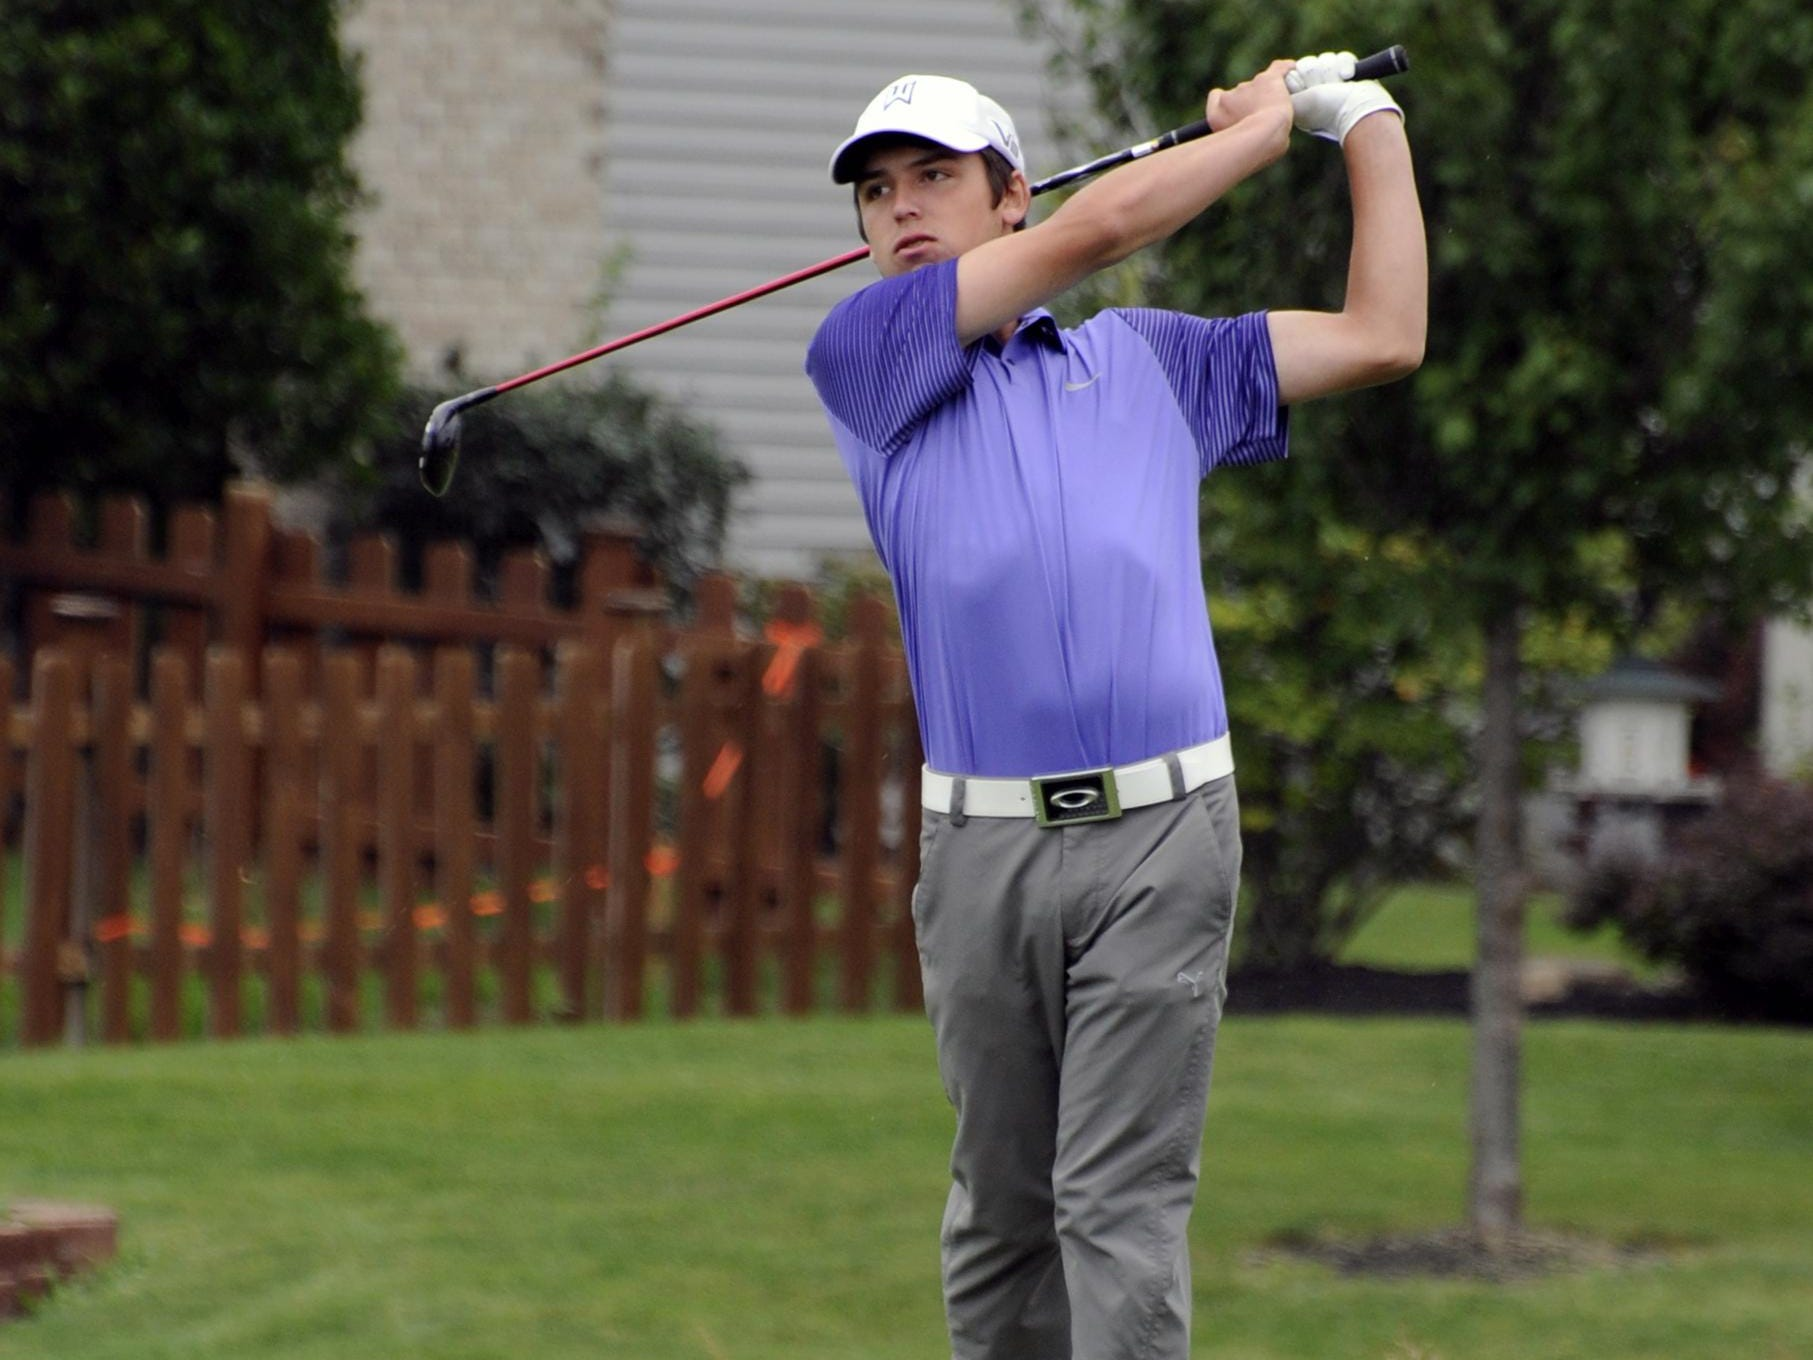 Bloom-Carroll's Bryce Walters tees off on the eighth hole during a 2014 tournament at Westchester Golf Course in Canal Winchester.